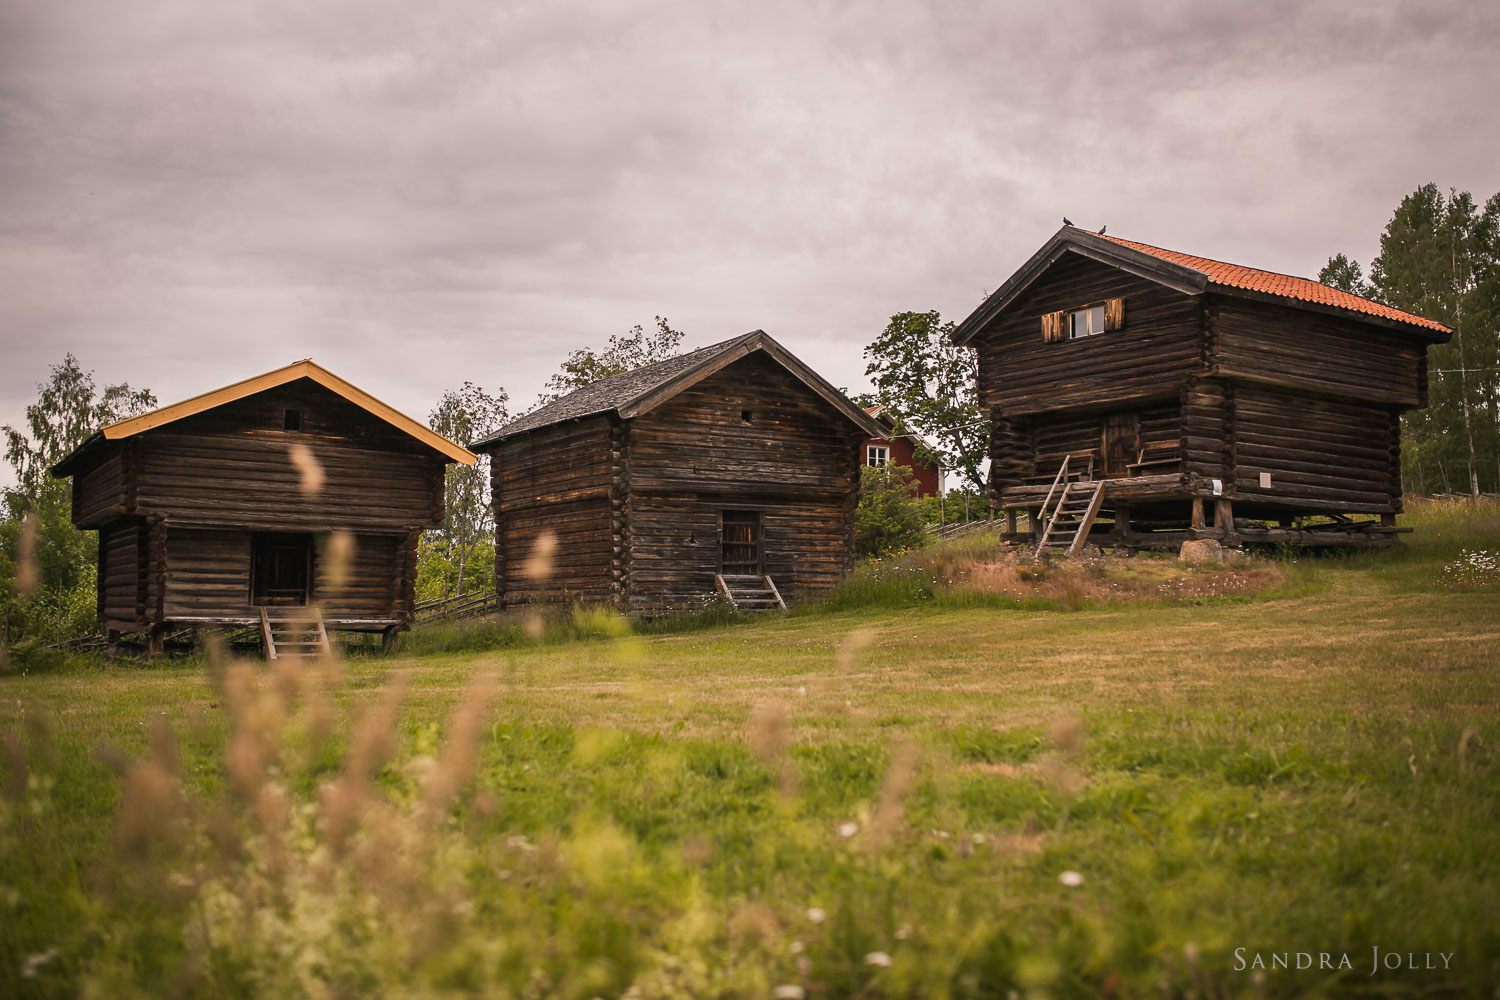 dalarna-log-cabins-by-sandra-jolly-photography.jpg